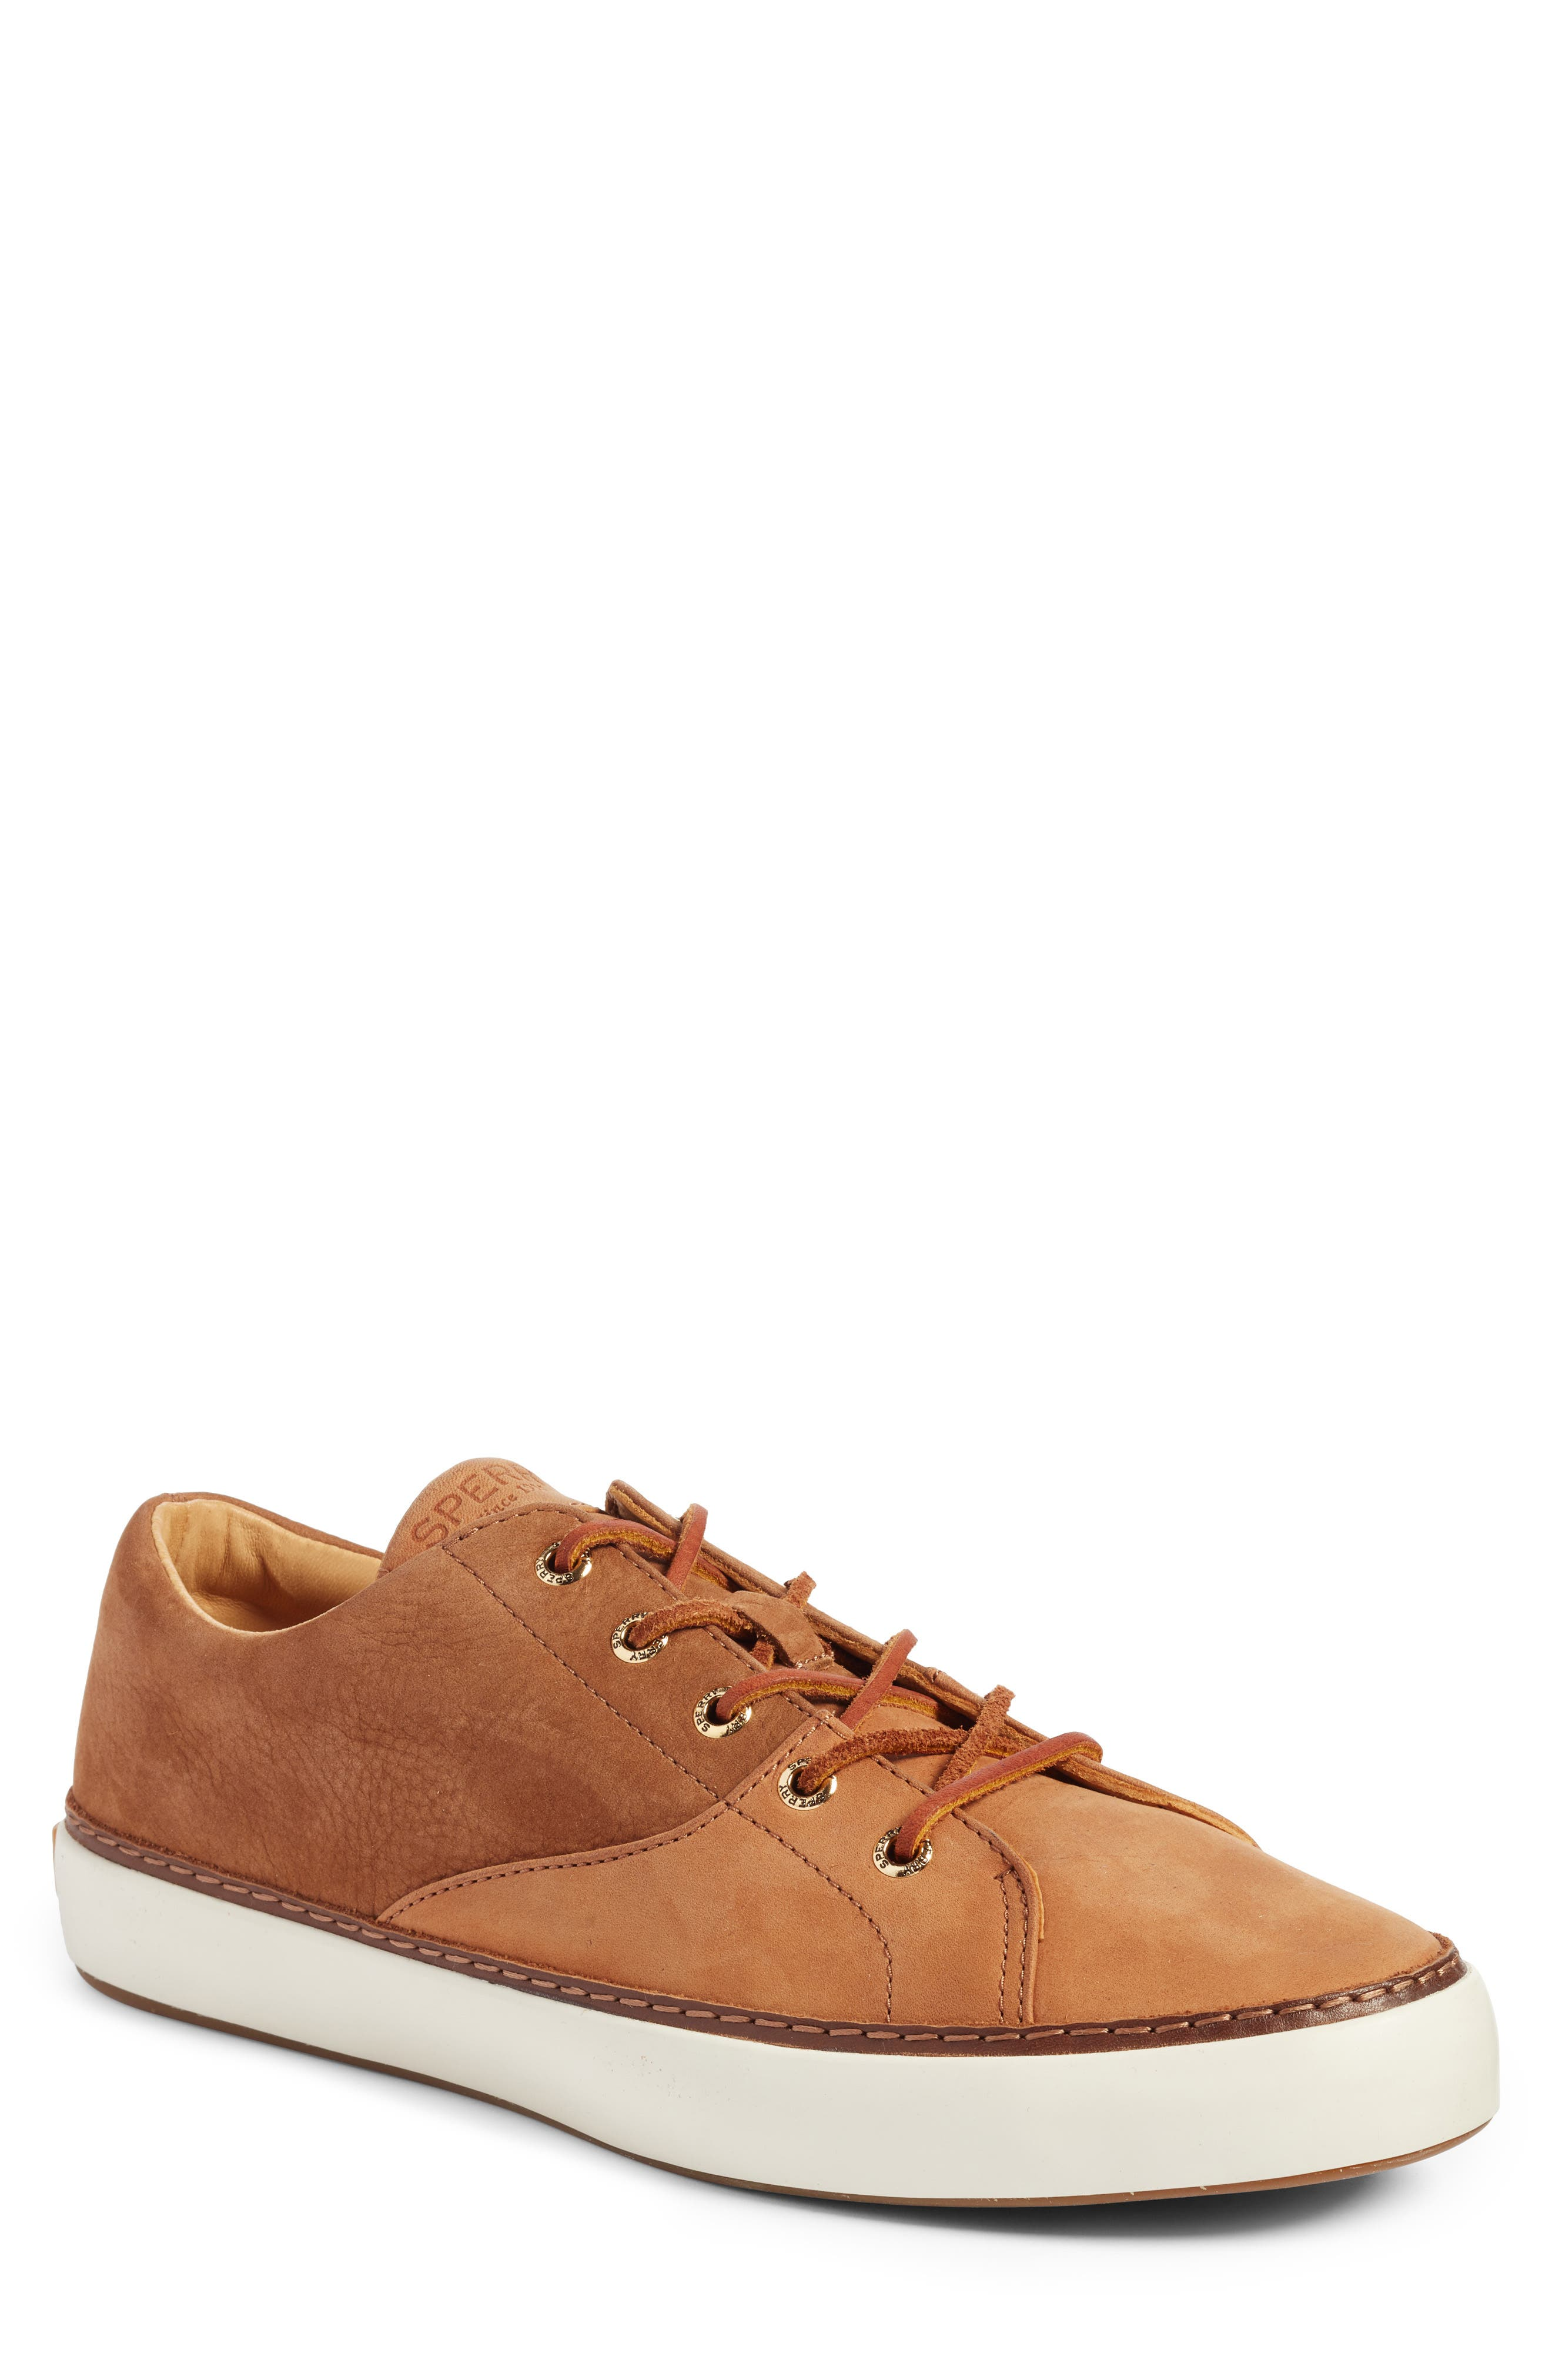 Gold Cup Haven Sneaker,                         Main,                         color, TAN LEATHER